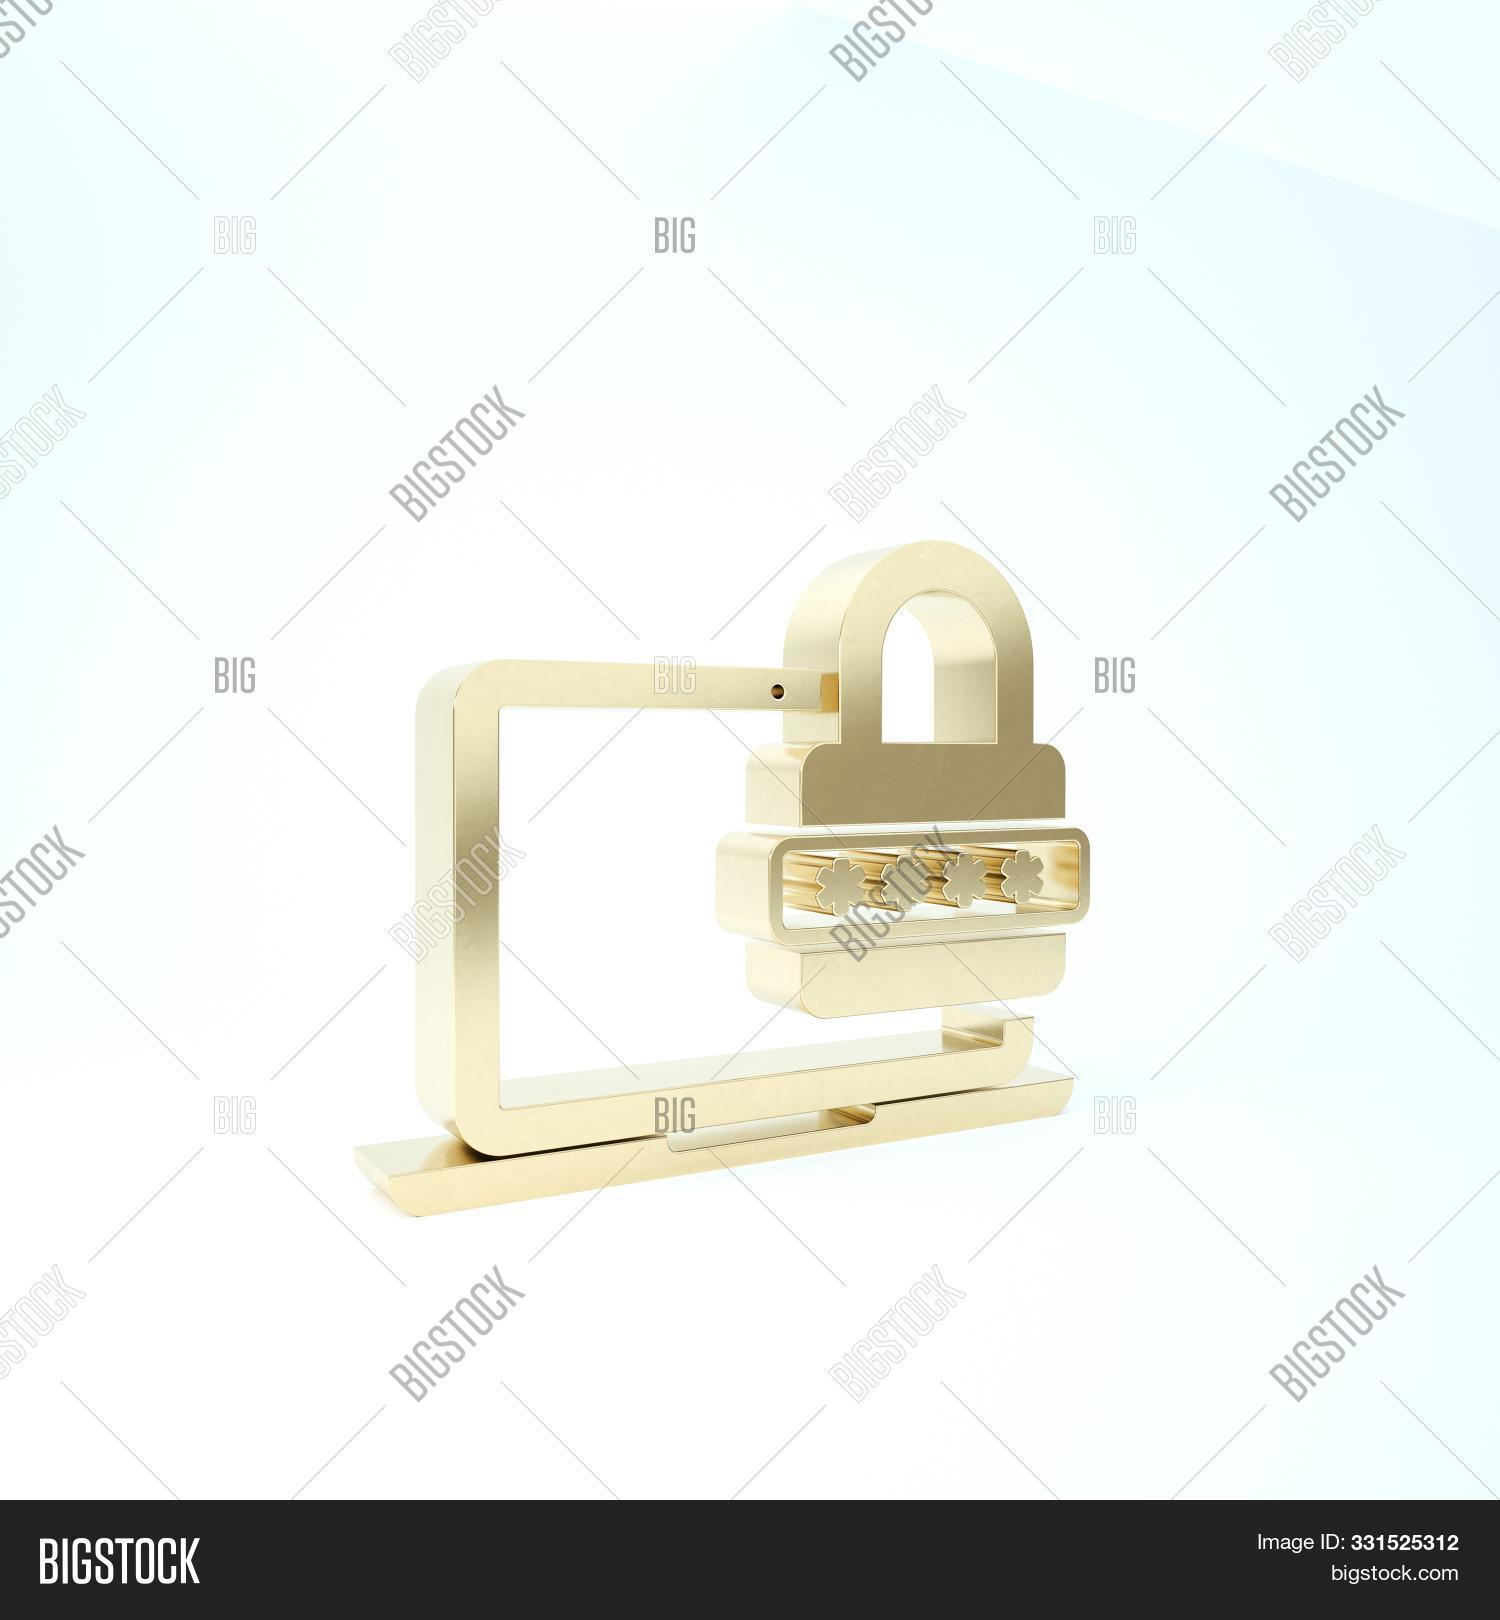 3D,access,account,authentication,authorization,background,color,colorful,computer,concept,data,design,flat,form,gold,golden,graphic,icon,illustration,information,internet,key,laptop,lock,login,notification,online,page,password,personal,privacy,private,protection,registration,render,rendering,safety,screen,secure,security,sign,site,symbol,system,technology,user,username,web,website,white